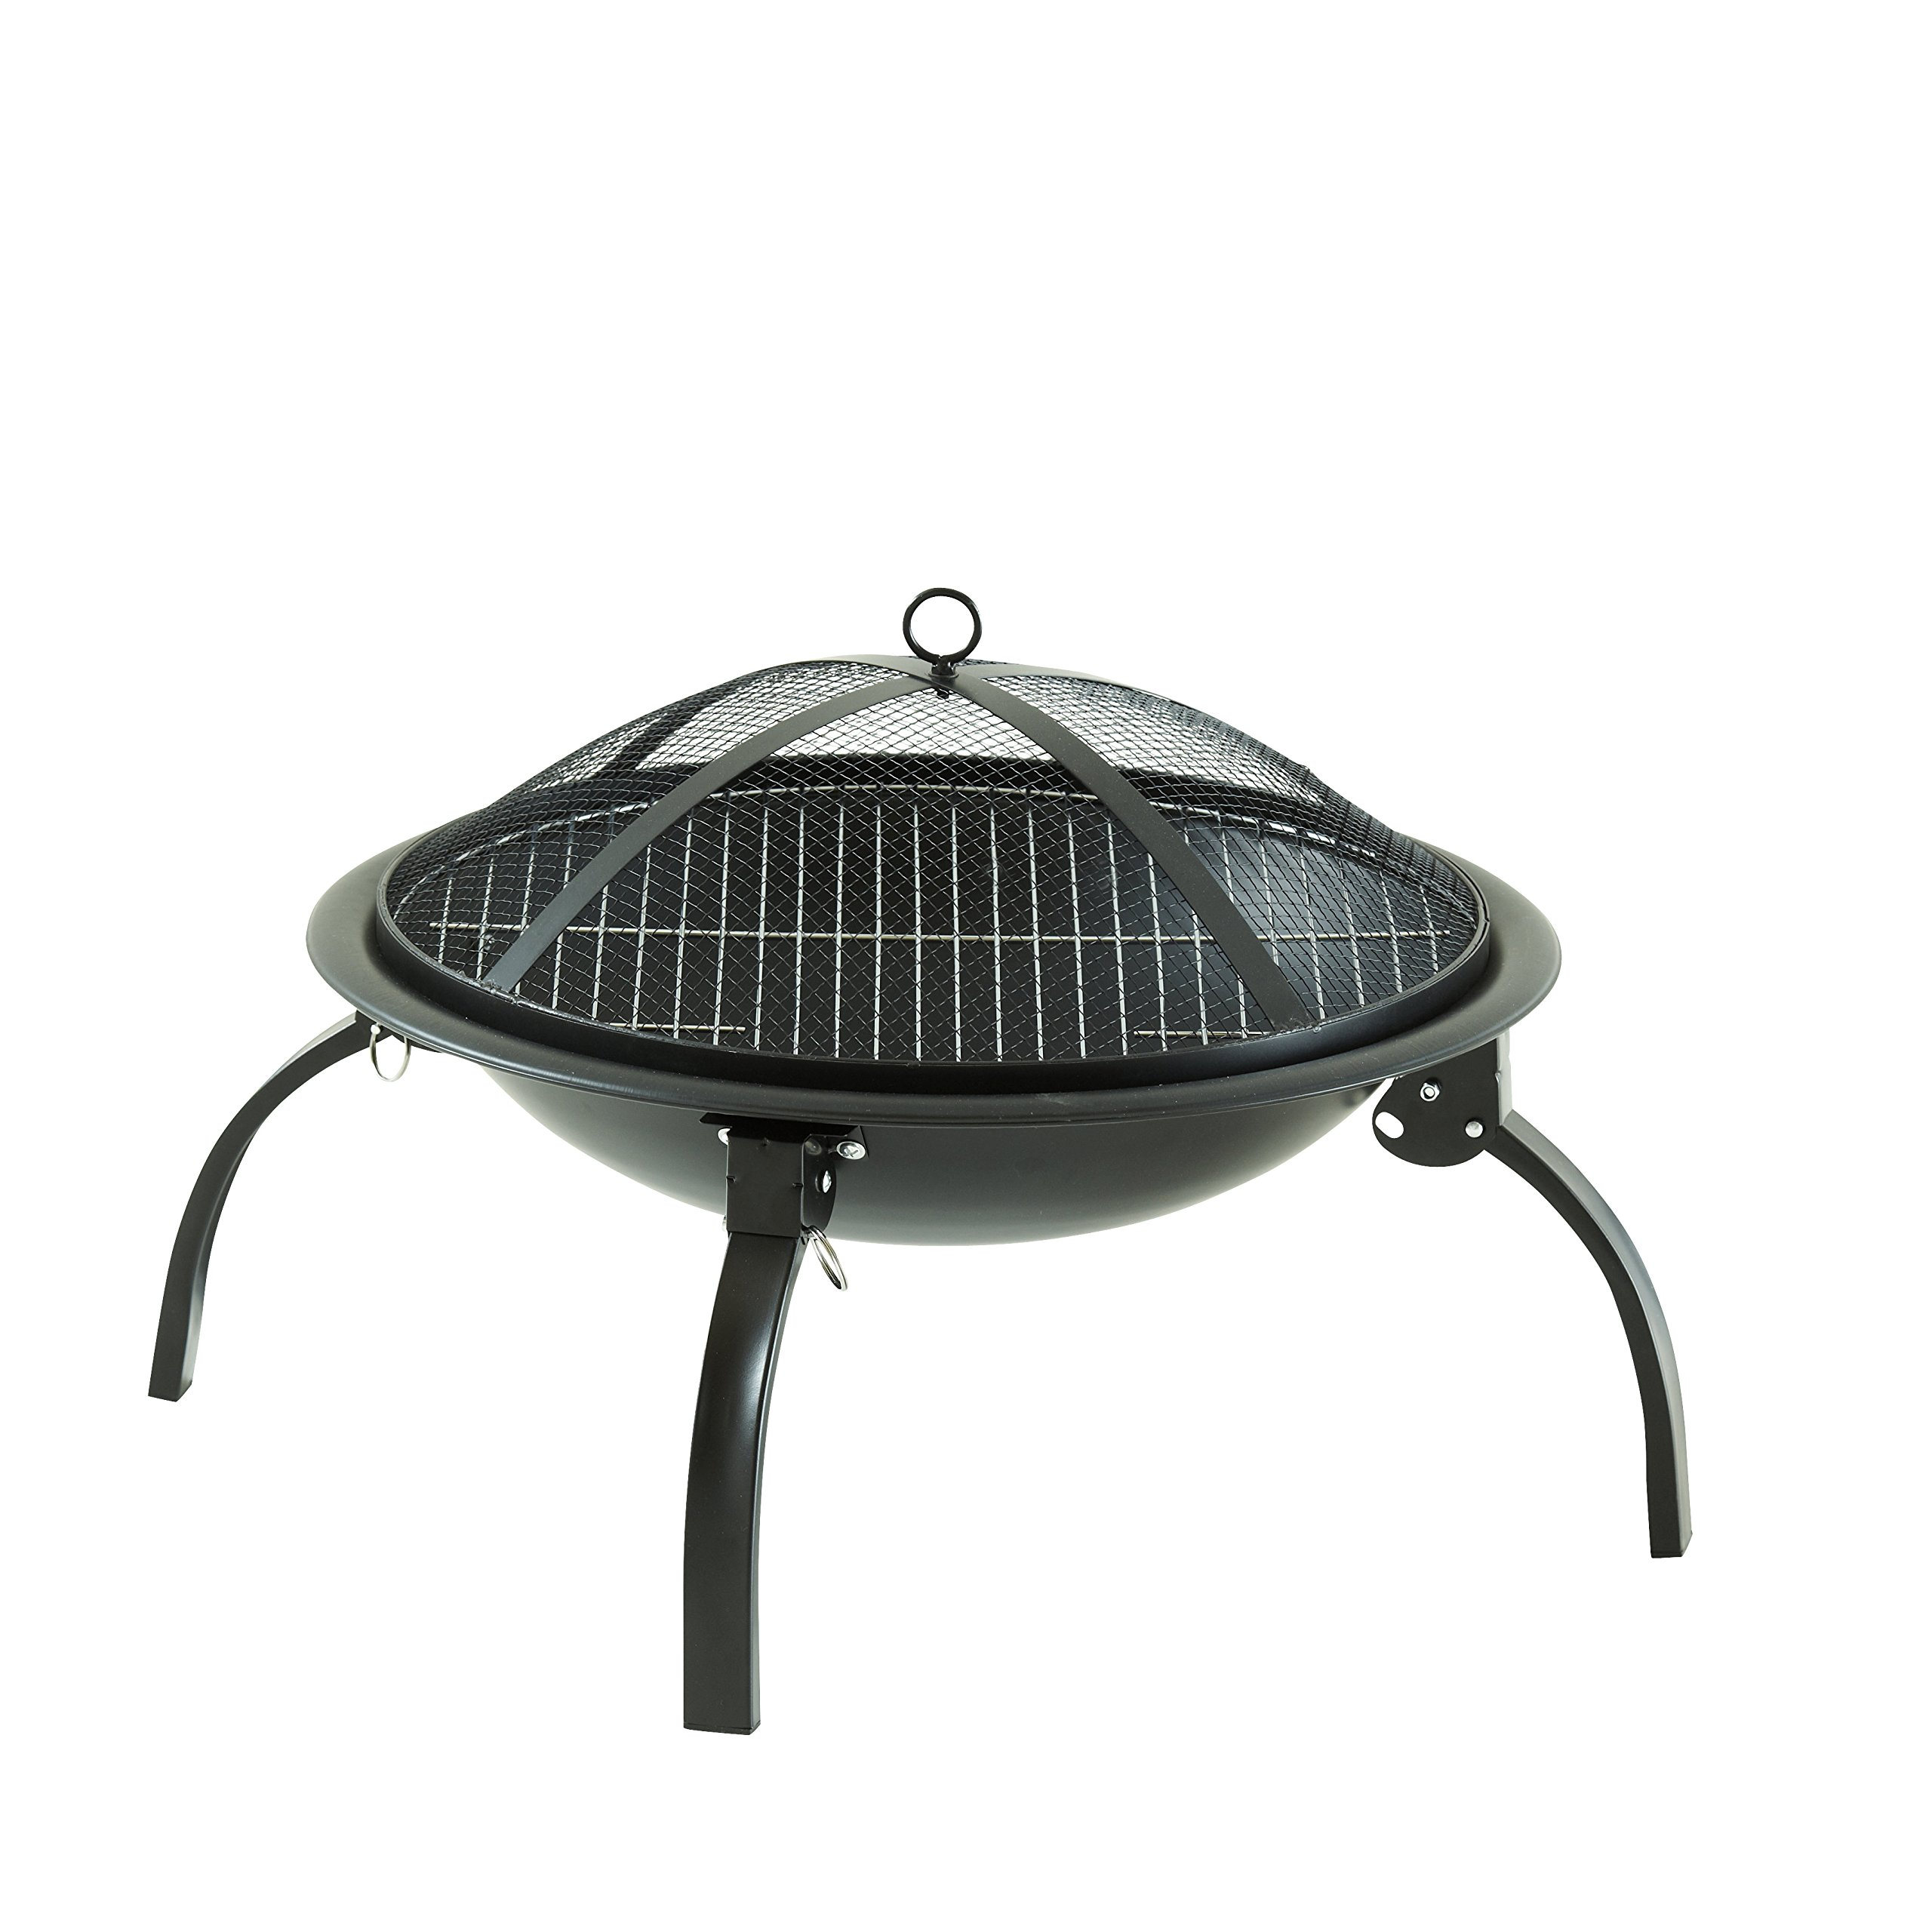 Bulit-in Grate for Camping Picnic Bonfire Patio Backyard Garden Beaches Park YDYG Outdoor Fire Pit 22 Steel BBQ Grill Fire Pit Bowl with Mesh Spark Screen Cover